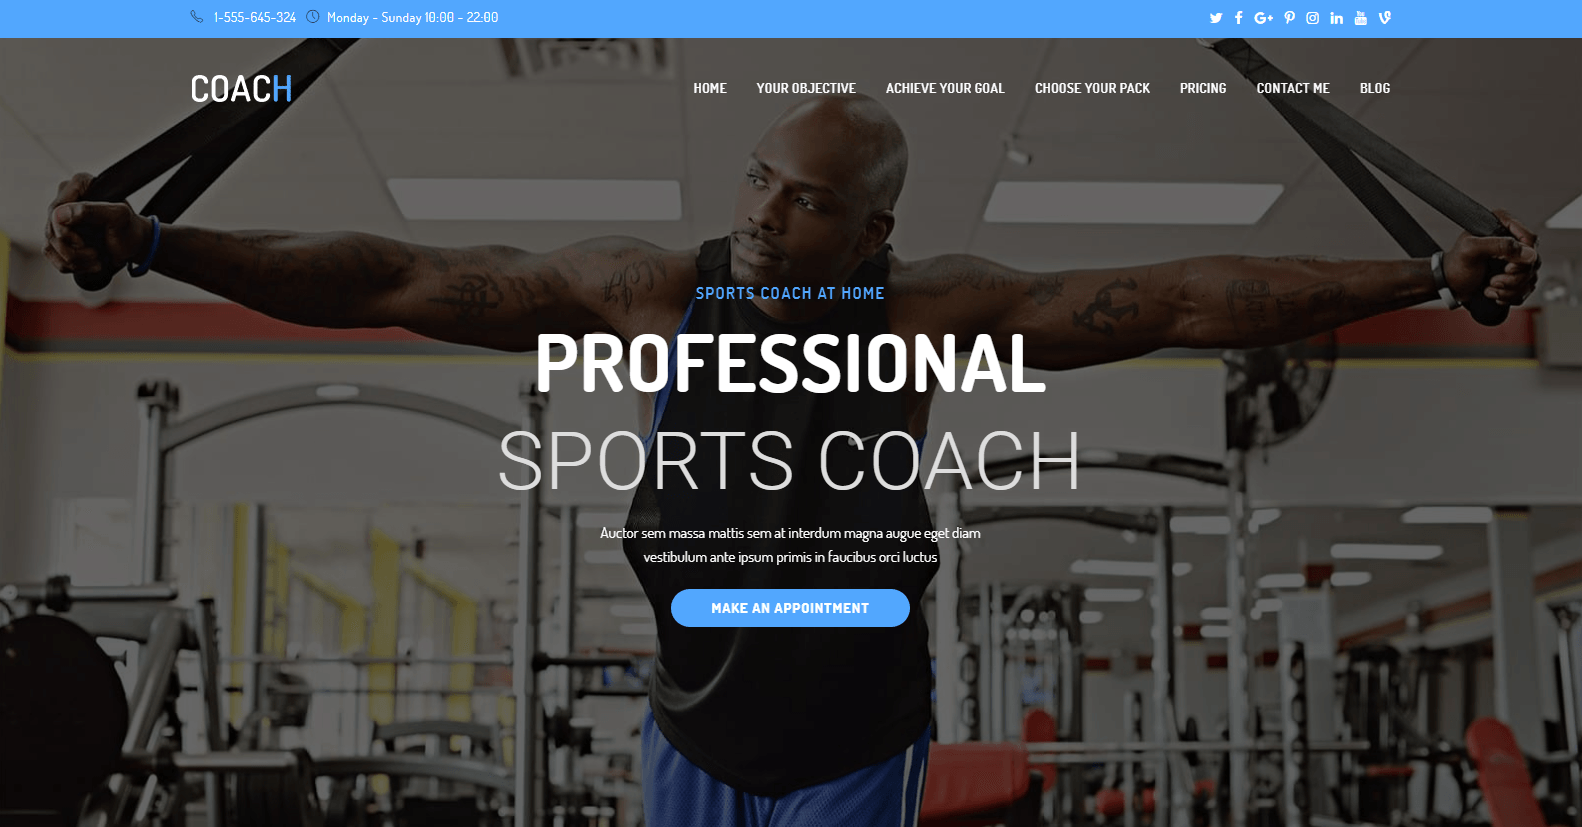 OceanWP sports coach demo